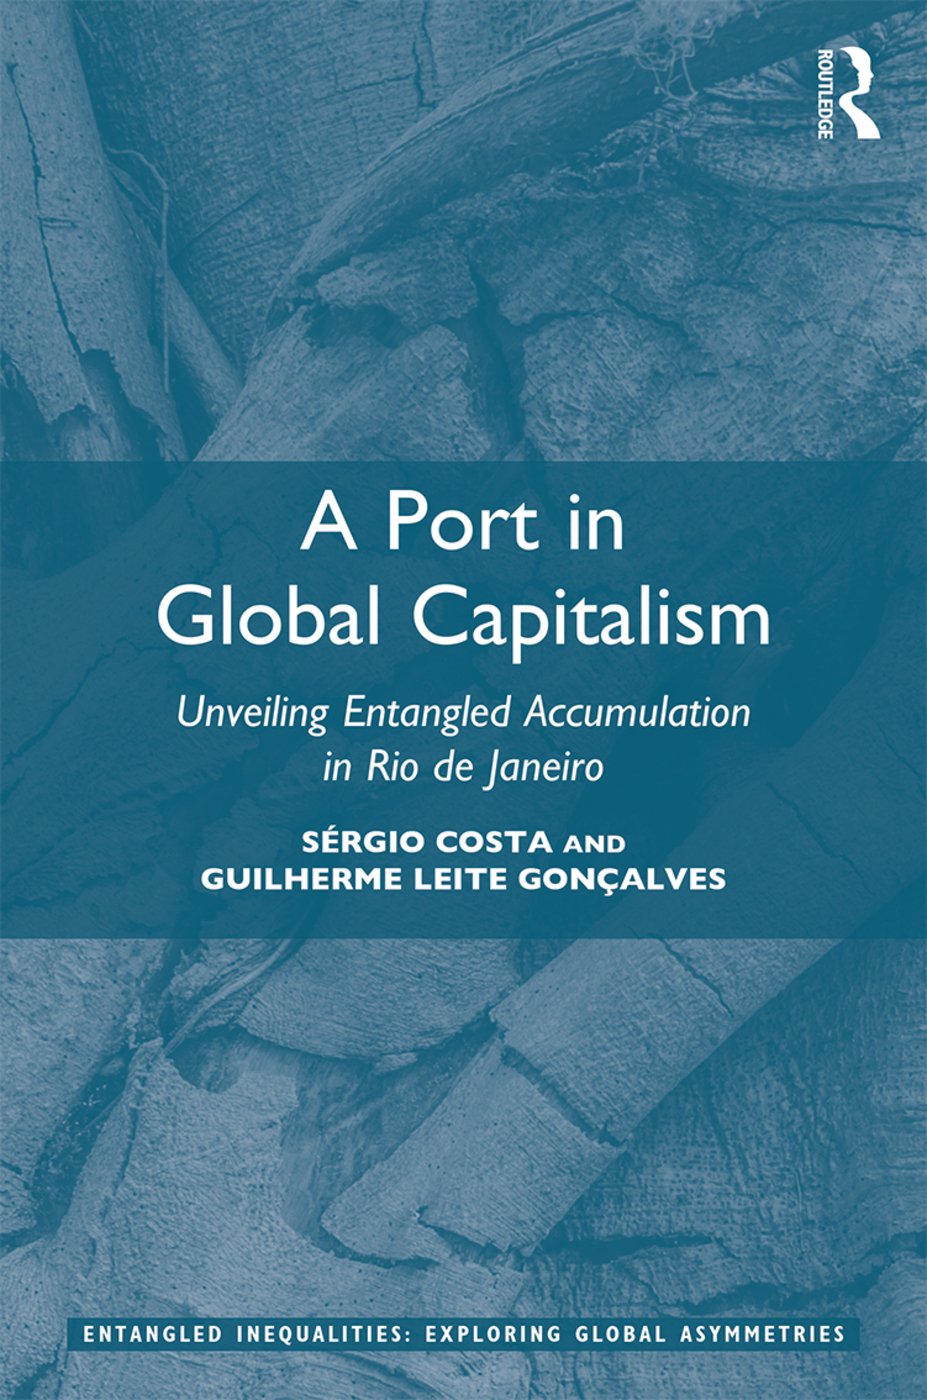 A Port in Global Capitalism: Unveiling Entangled Accumulation in Rio de Janeiro book cover